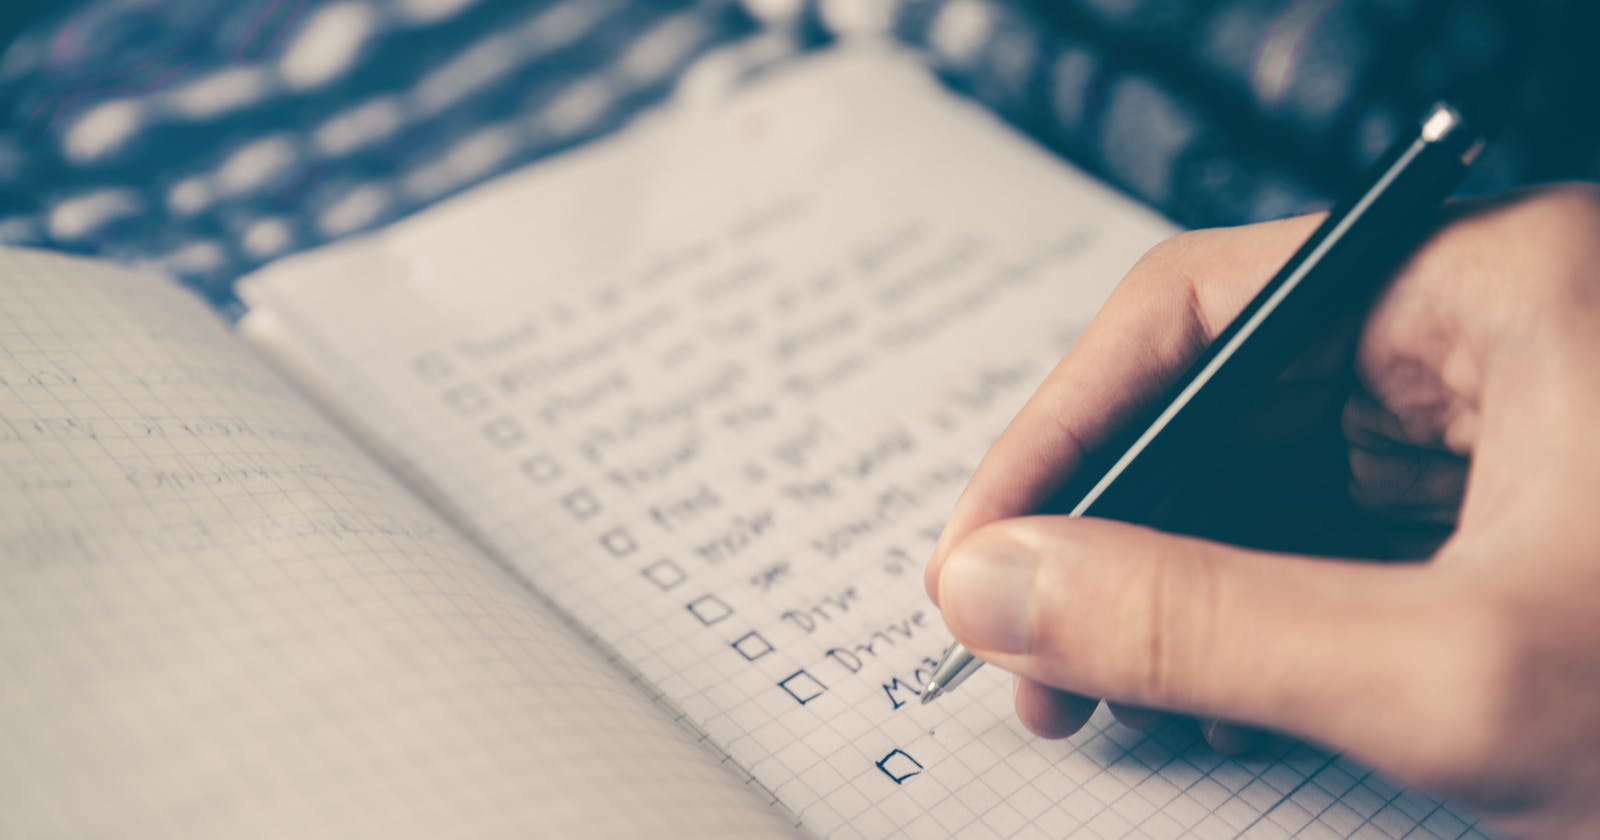 How Checklists Can Help You as a Developer